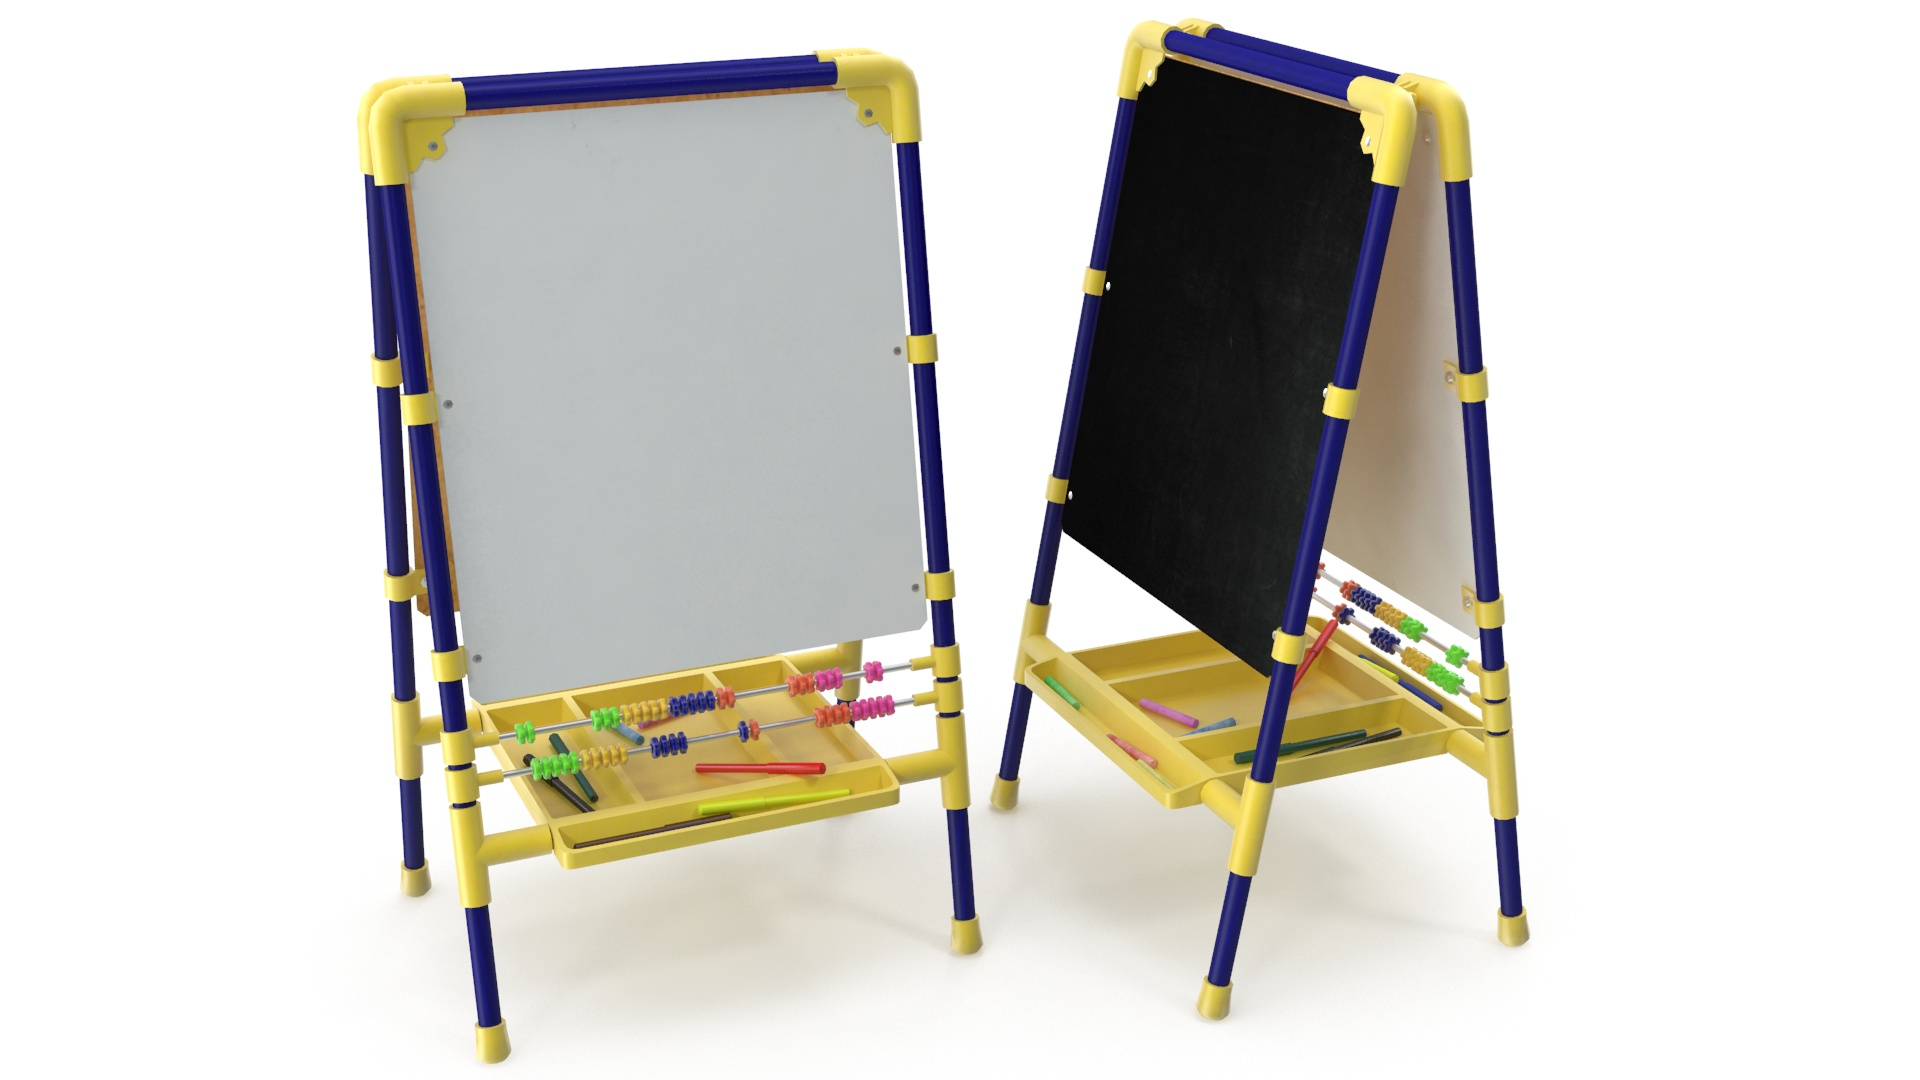 childrens drawing board 3d model 3ds max fbx obj 263602